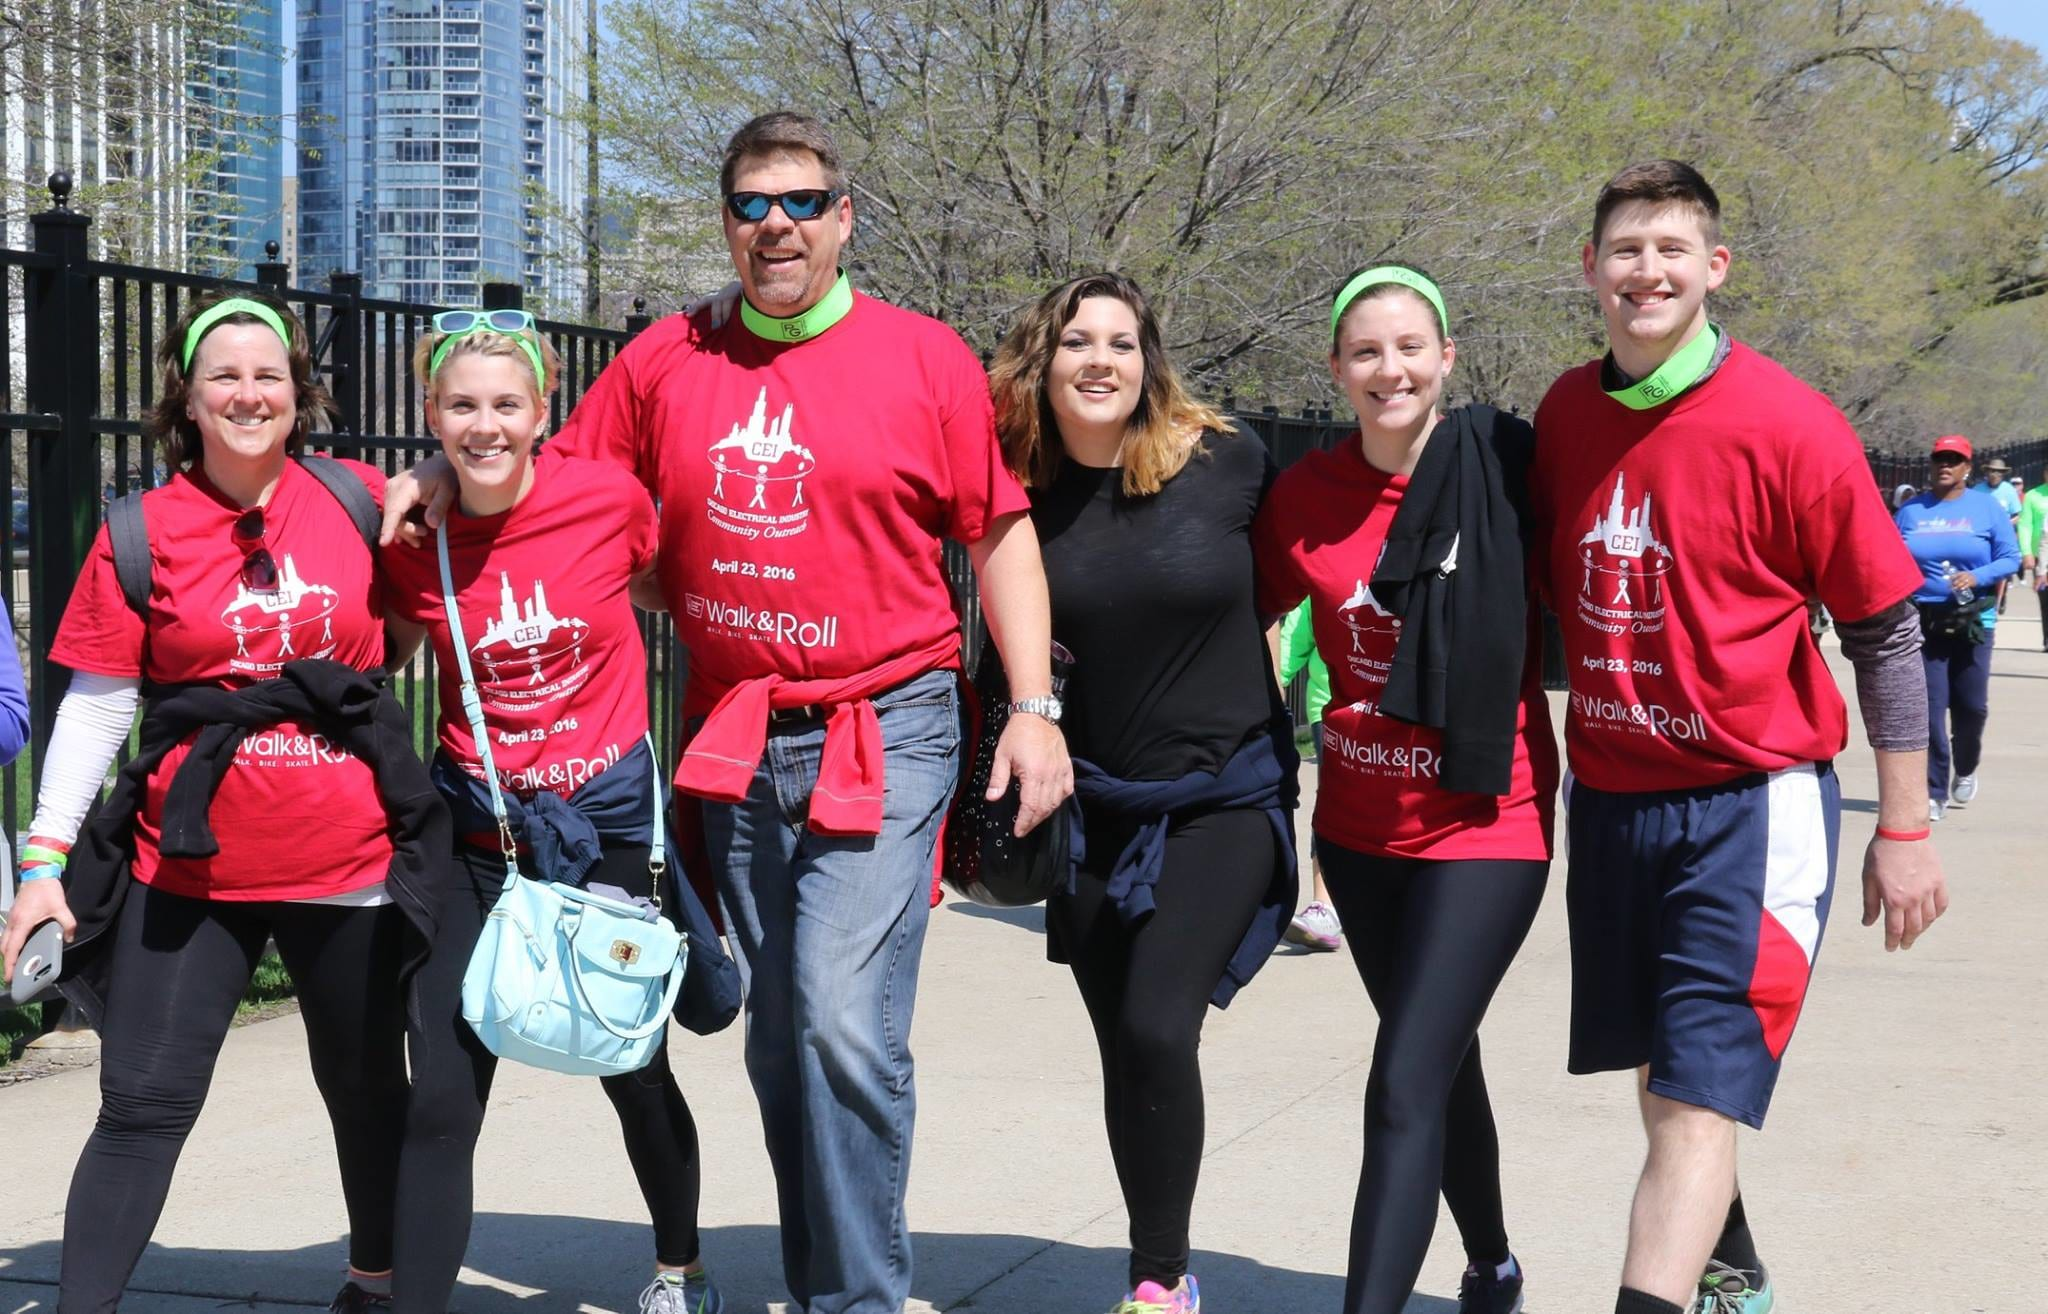 Friends walking together at the American Cancer Society Walk and Roll in Chicago